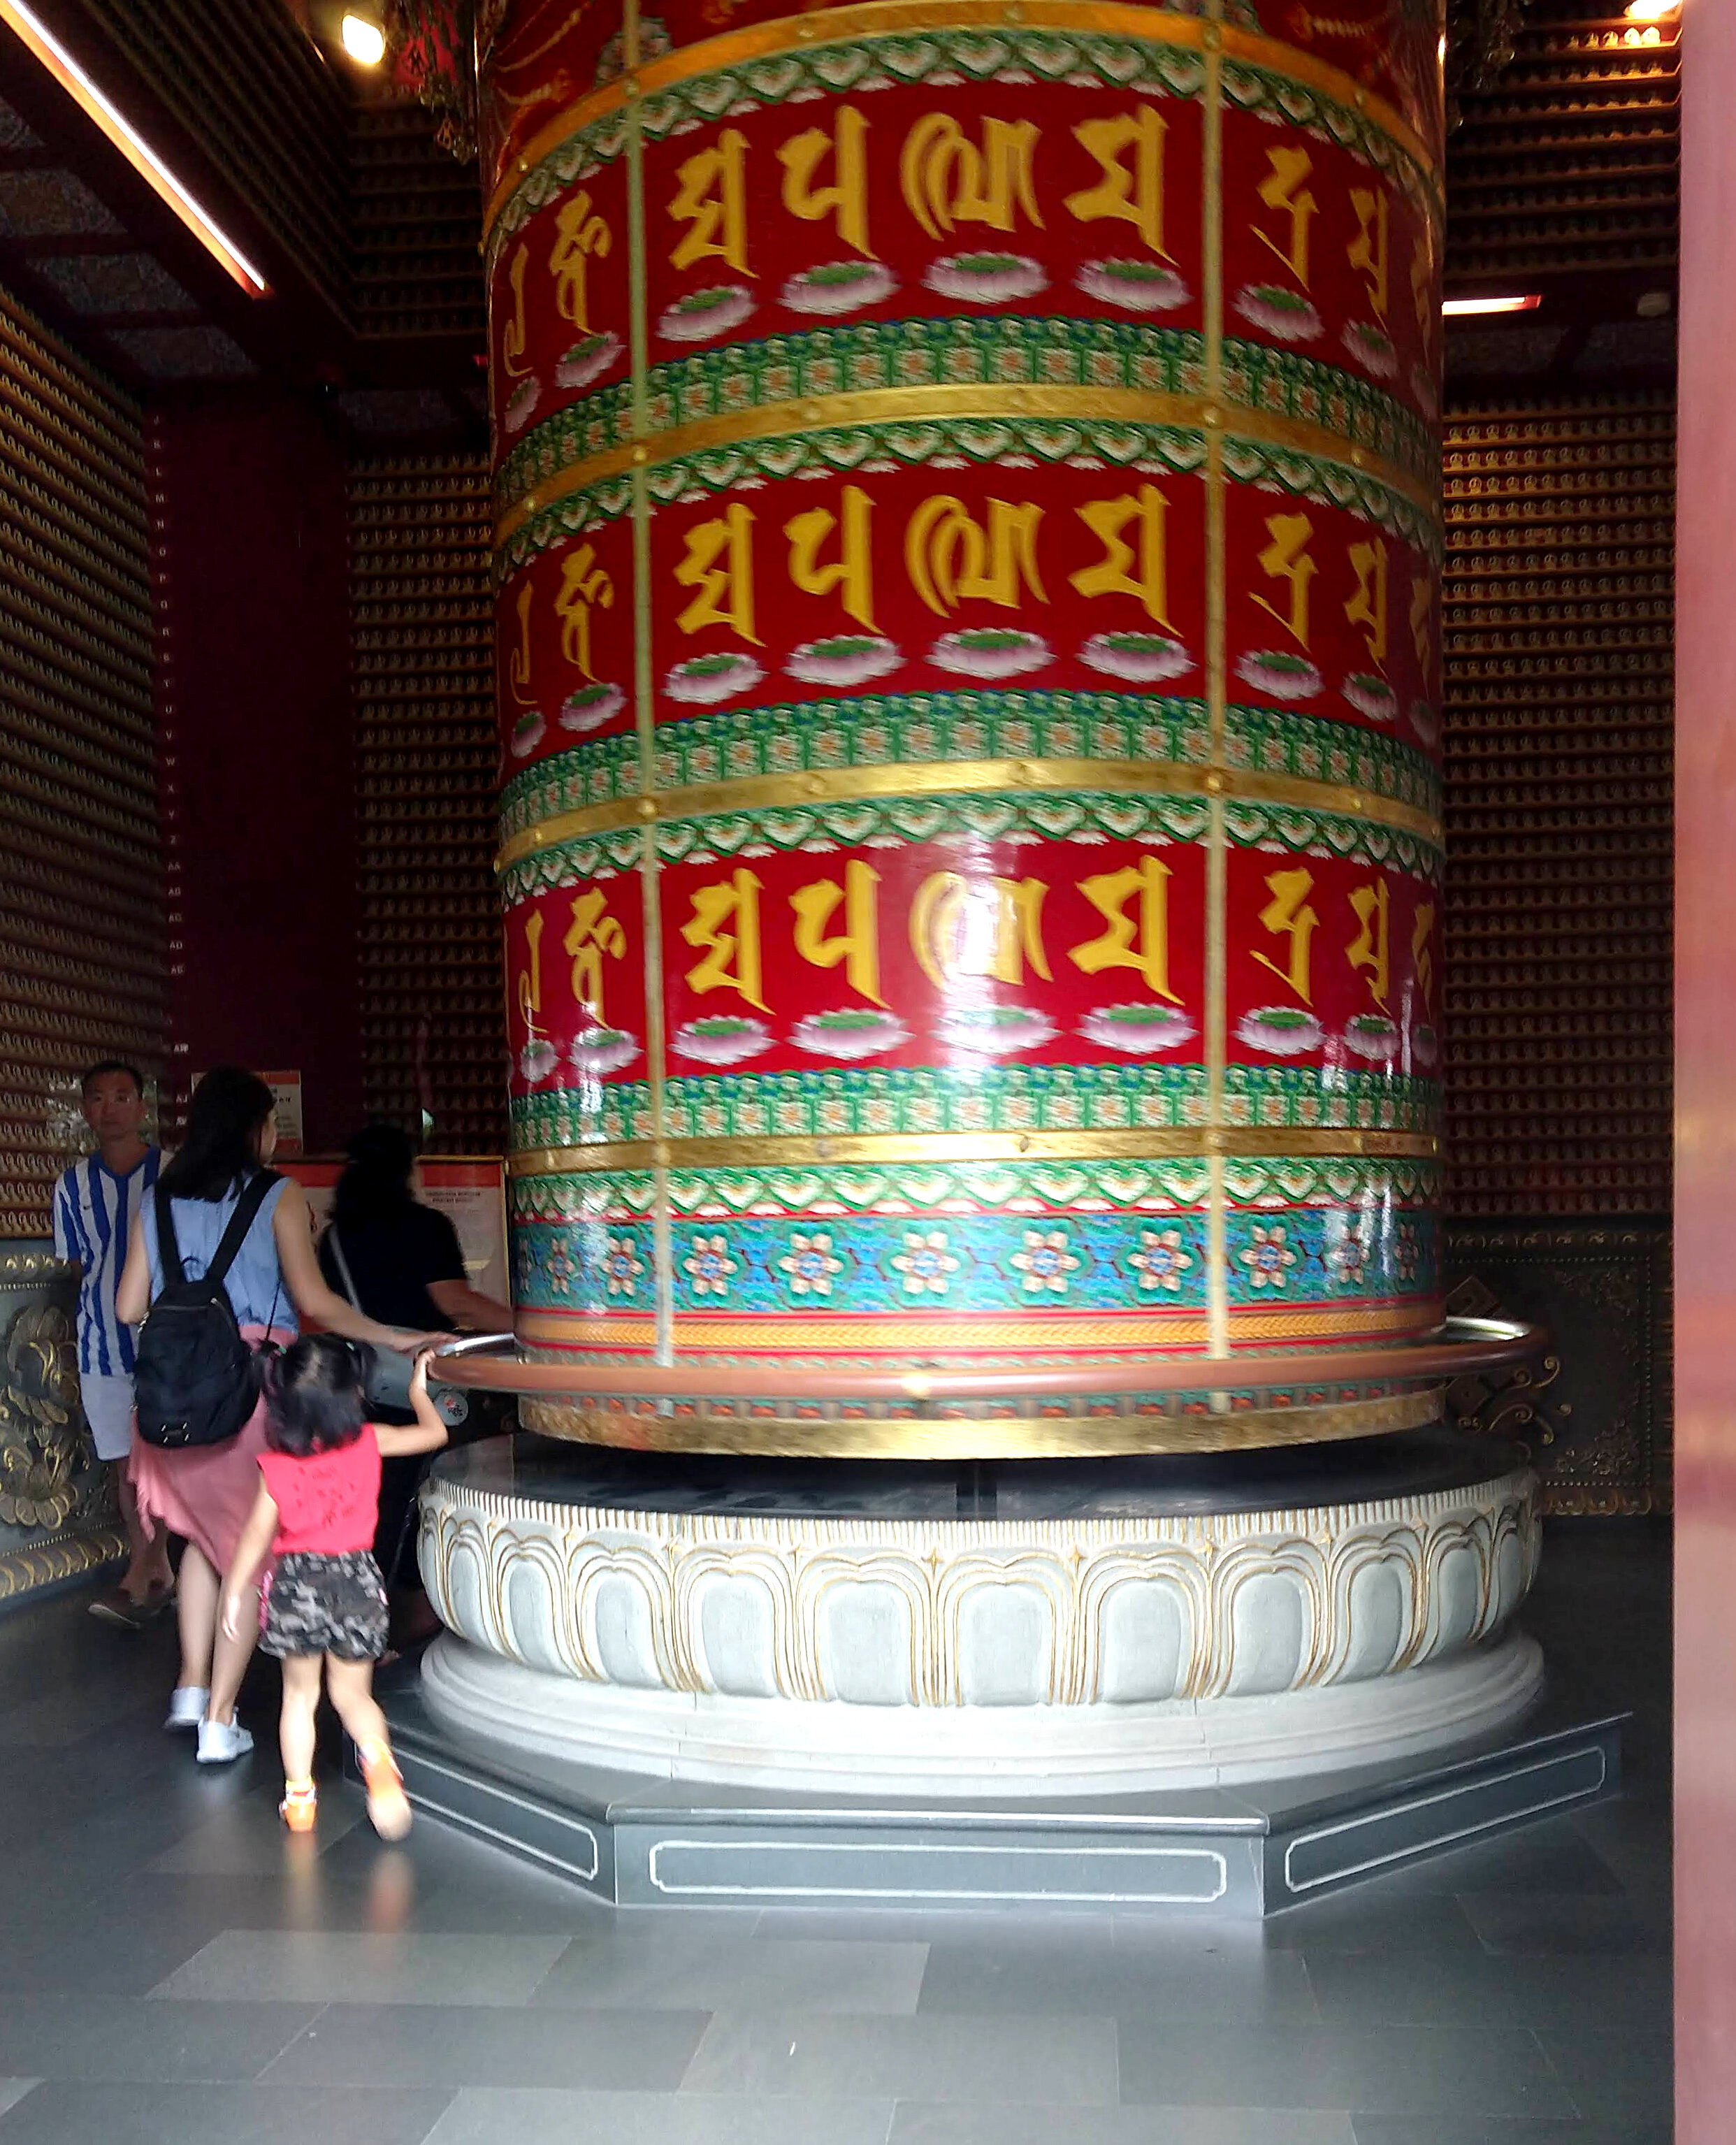 The largest cloisonné prayer wheel in the world, at the Buddha Tooth Relic Temple in Singapore. You hold onto a handrail to turn it.